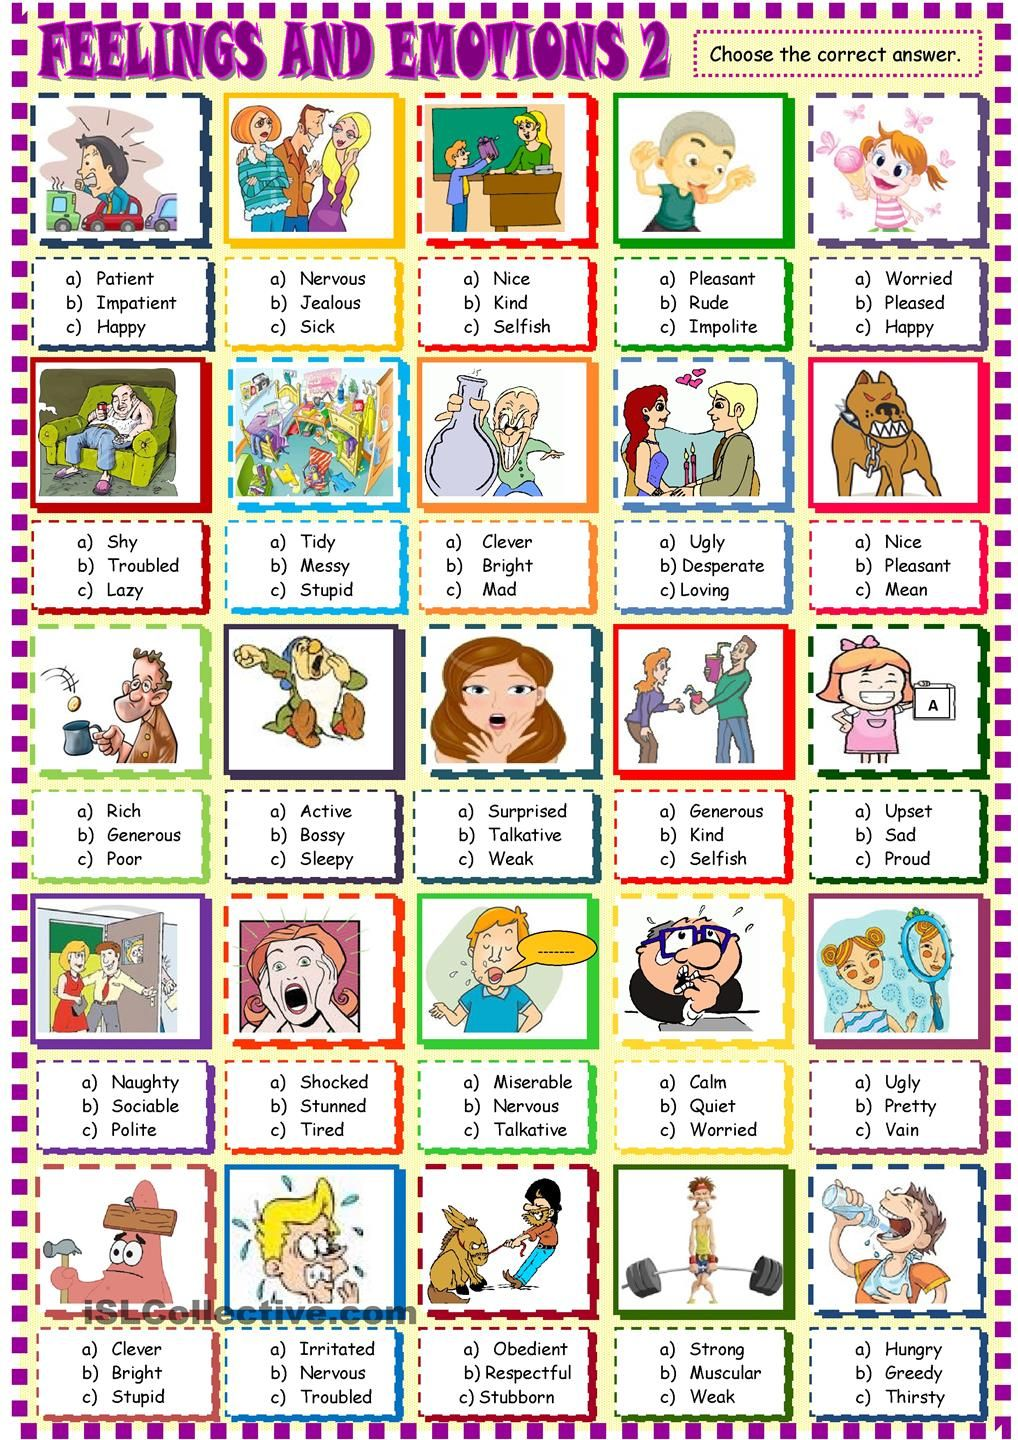 Feelings and emotions multiple choice activity2 | Sentimientos y ...